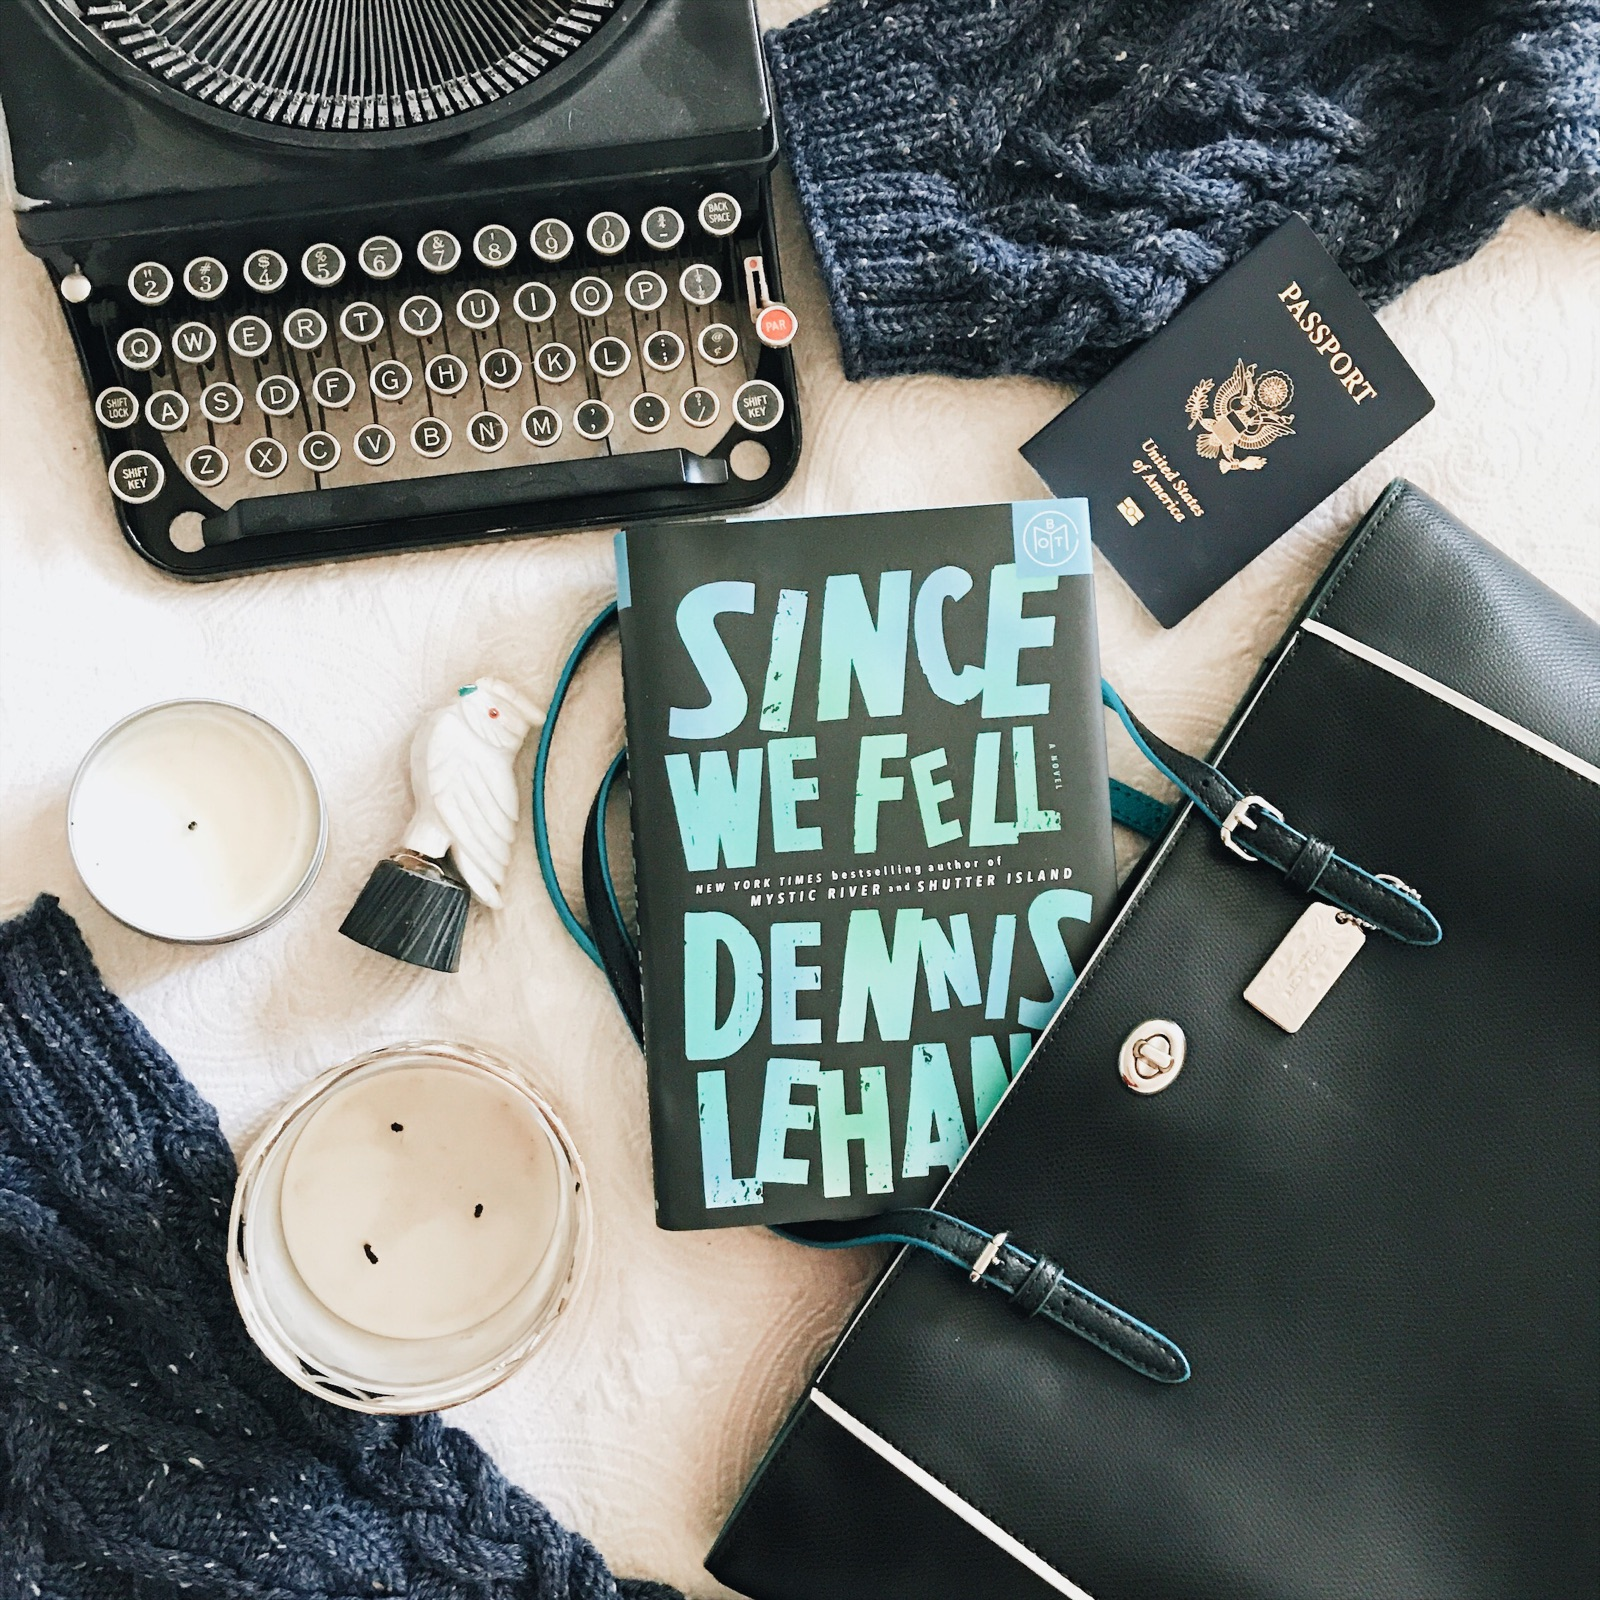 """Book Review: """"Since We Fell"""" by Dennis Lehane The Cozie"""